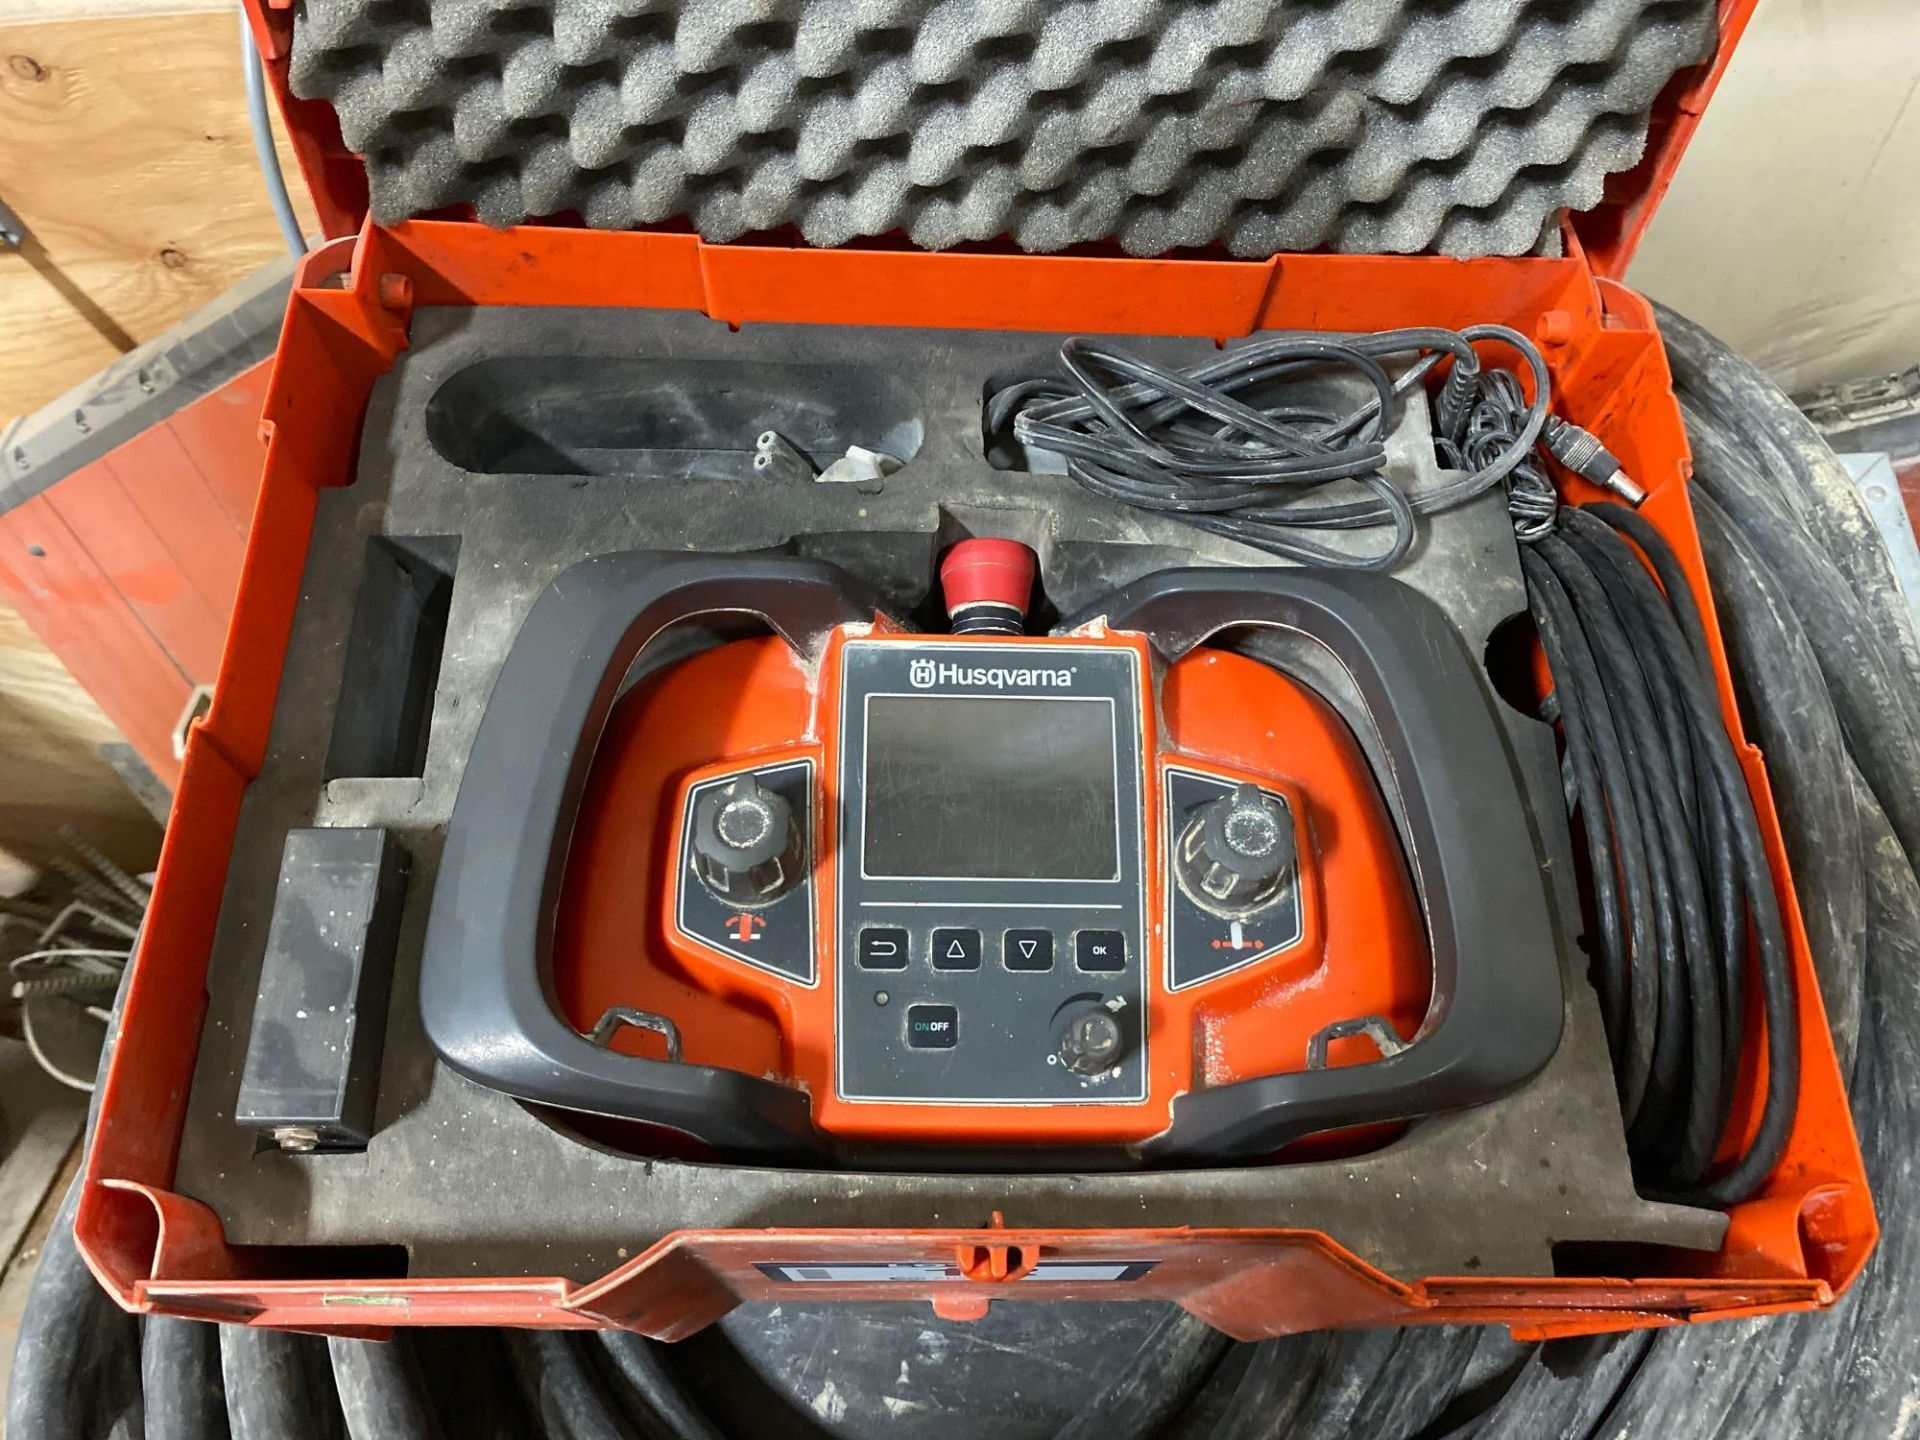 Husqvarna WS 440 HF Electric Wall Saw, Husqvarna PP 440 HF Power Pack, Track System, Blade Guards, e - Image 8 of 17